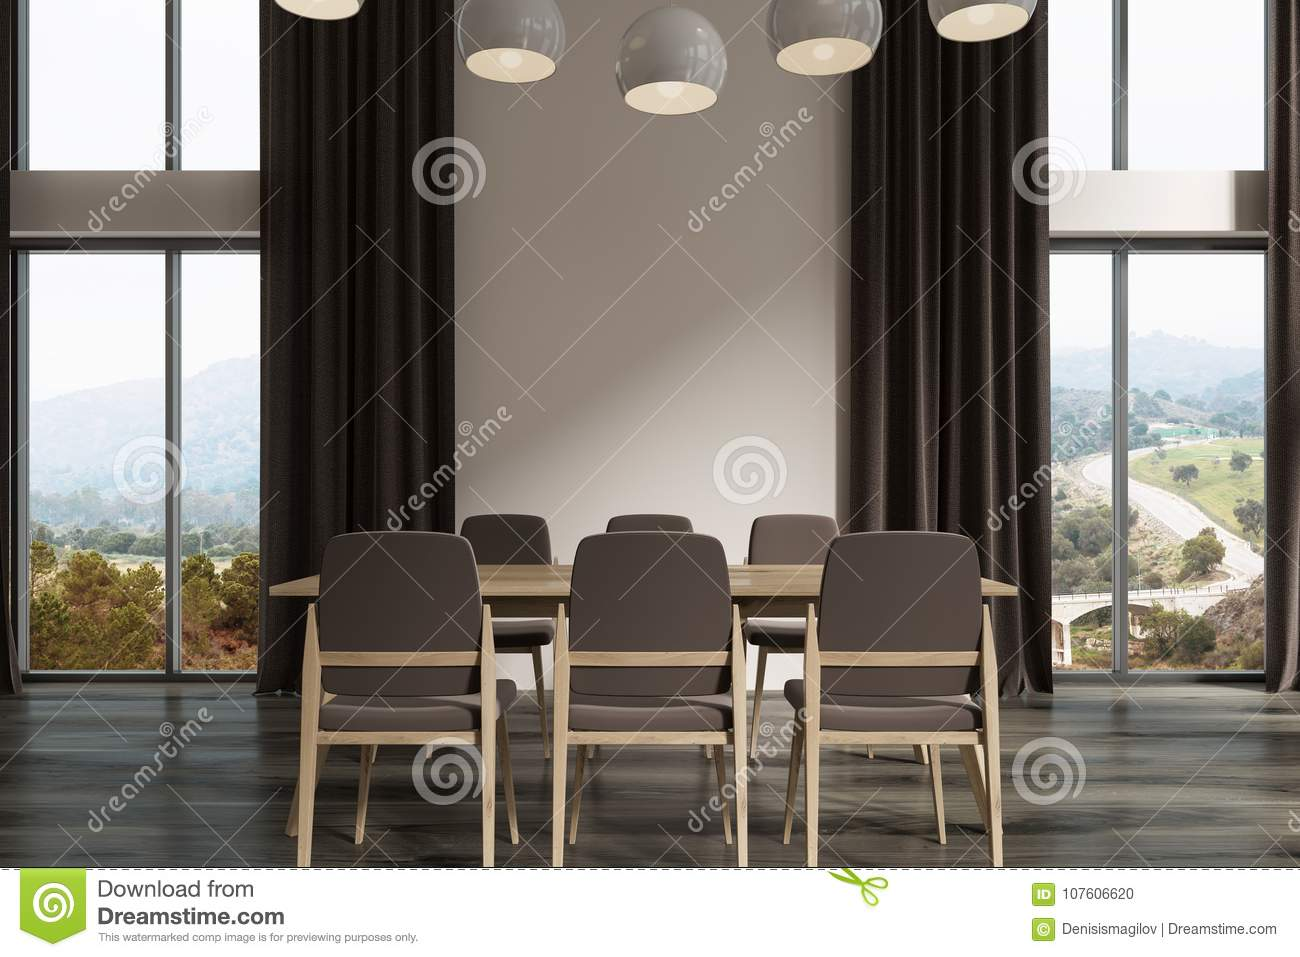 White Dining Room Interior With A Dark Wooden Floor Long Table Gray Chairs And Tall Windows Black Curtains 3d Rendering Mock Up